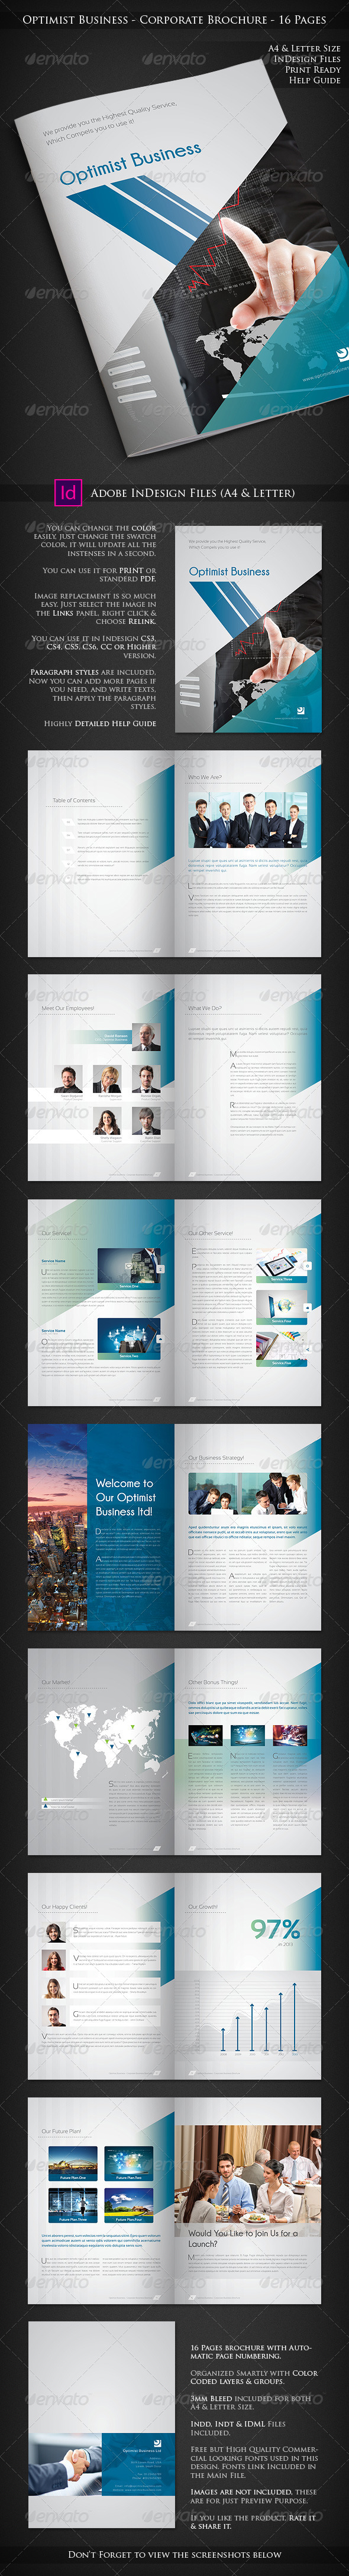 Optimist Business - Corporate Brochure - Corporate Brochures